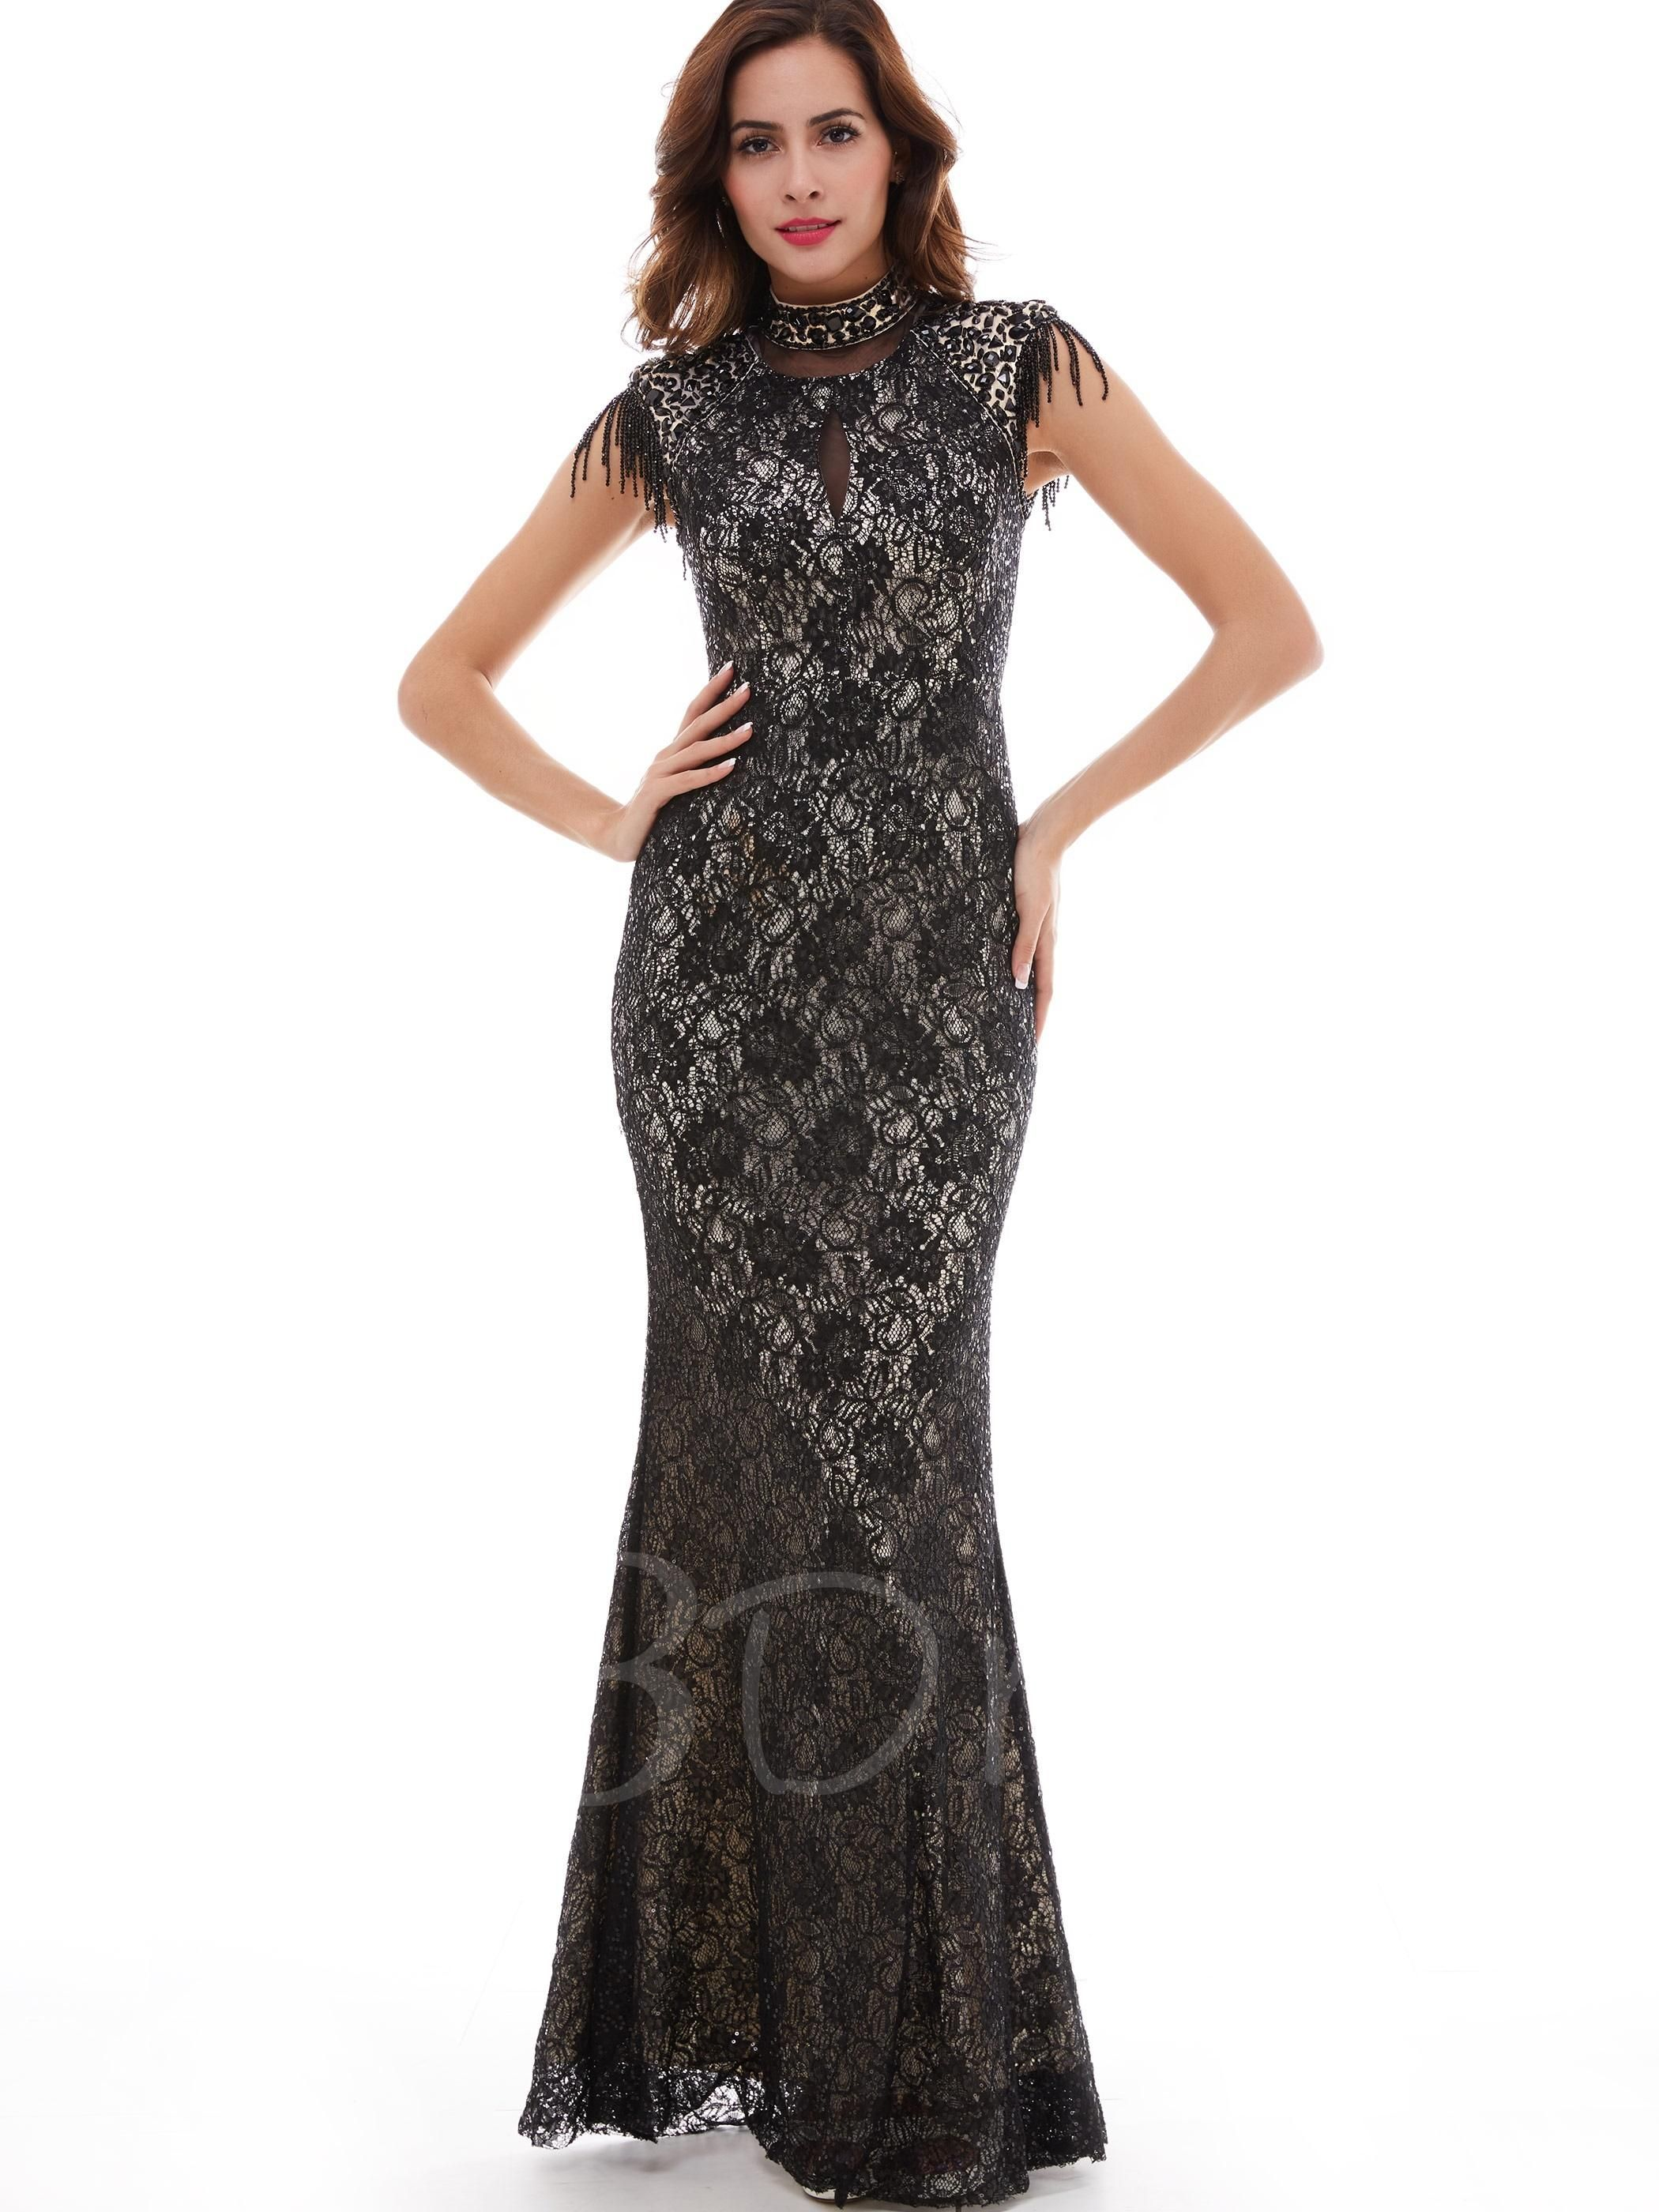 Choker high neck lace mermaidtrumpet evening dress lace mermaid